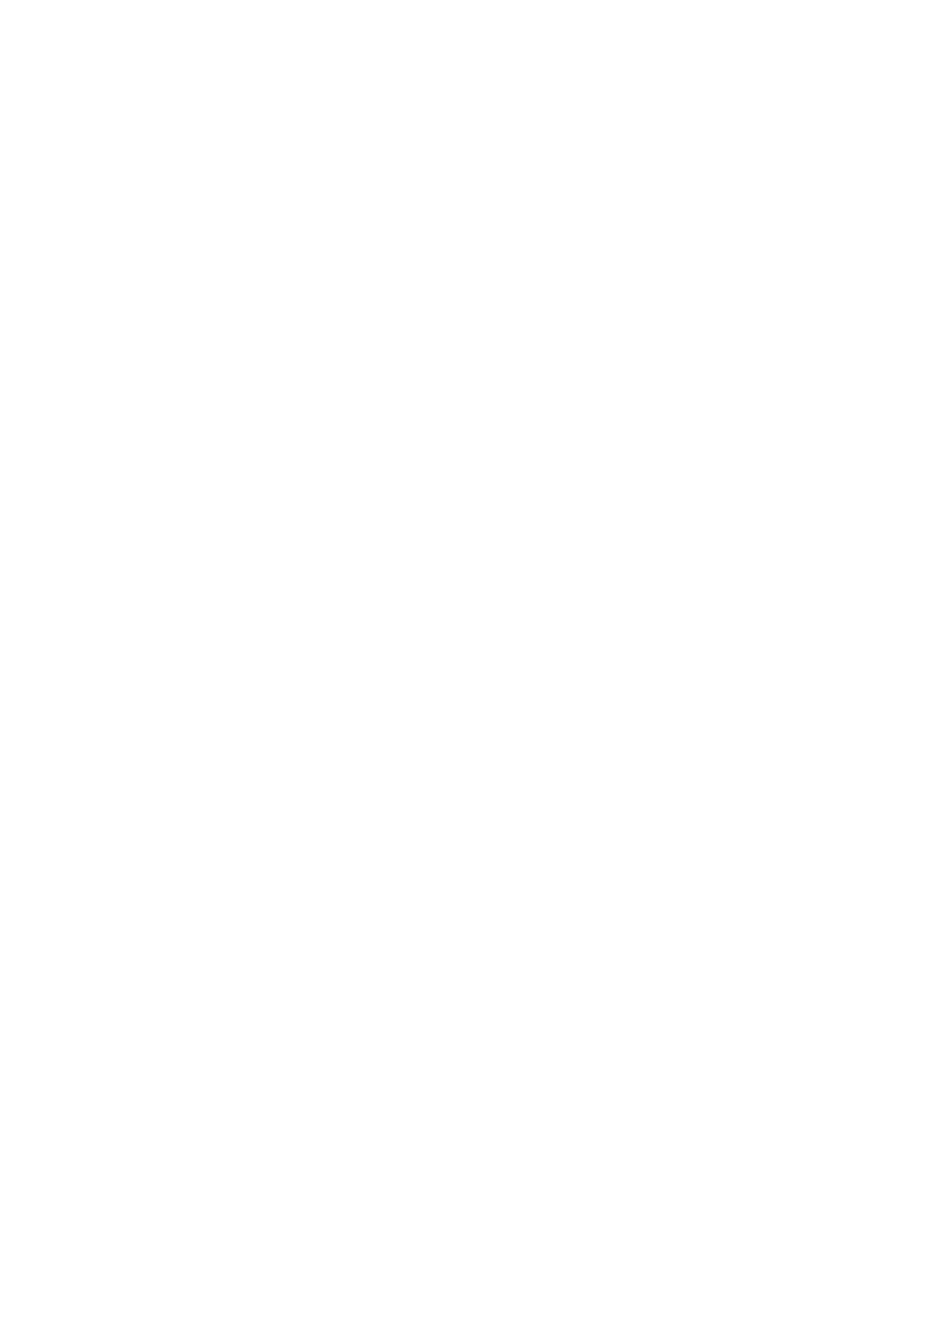 Jimmy's Popup